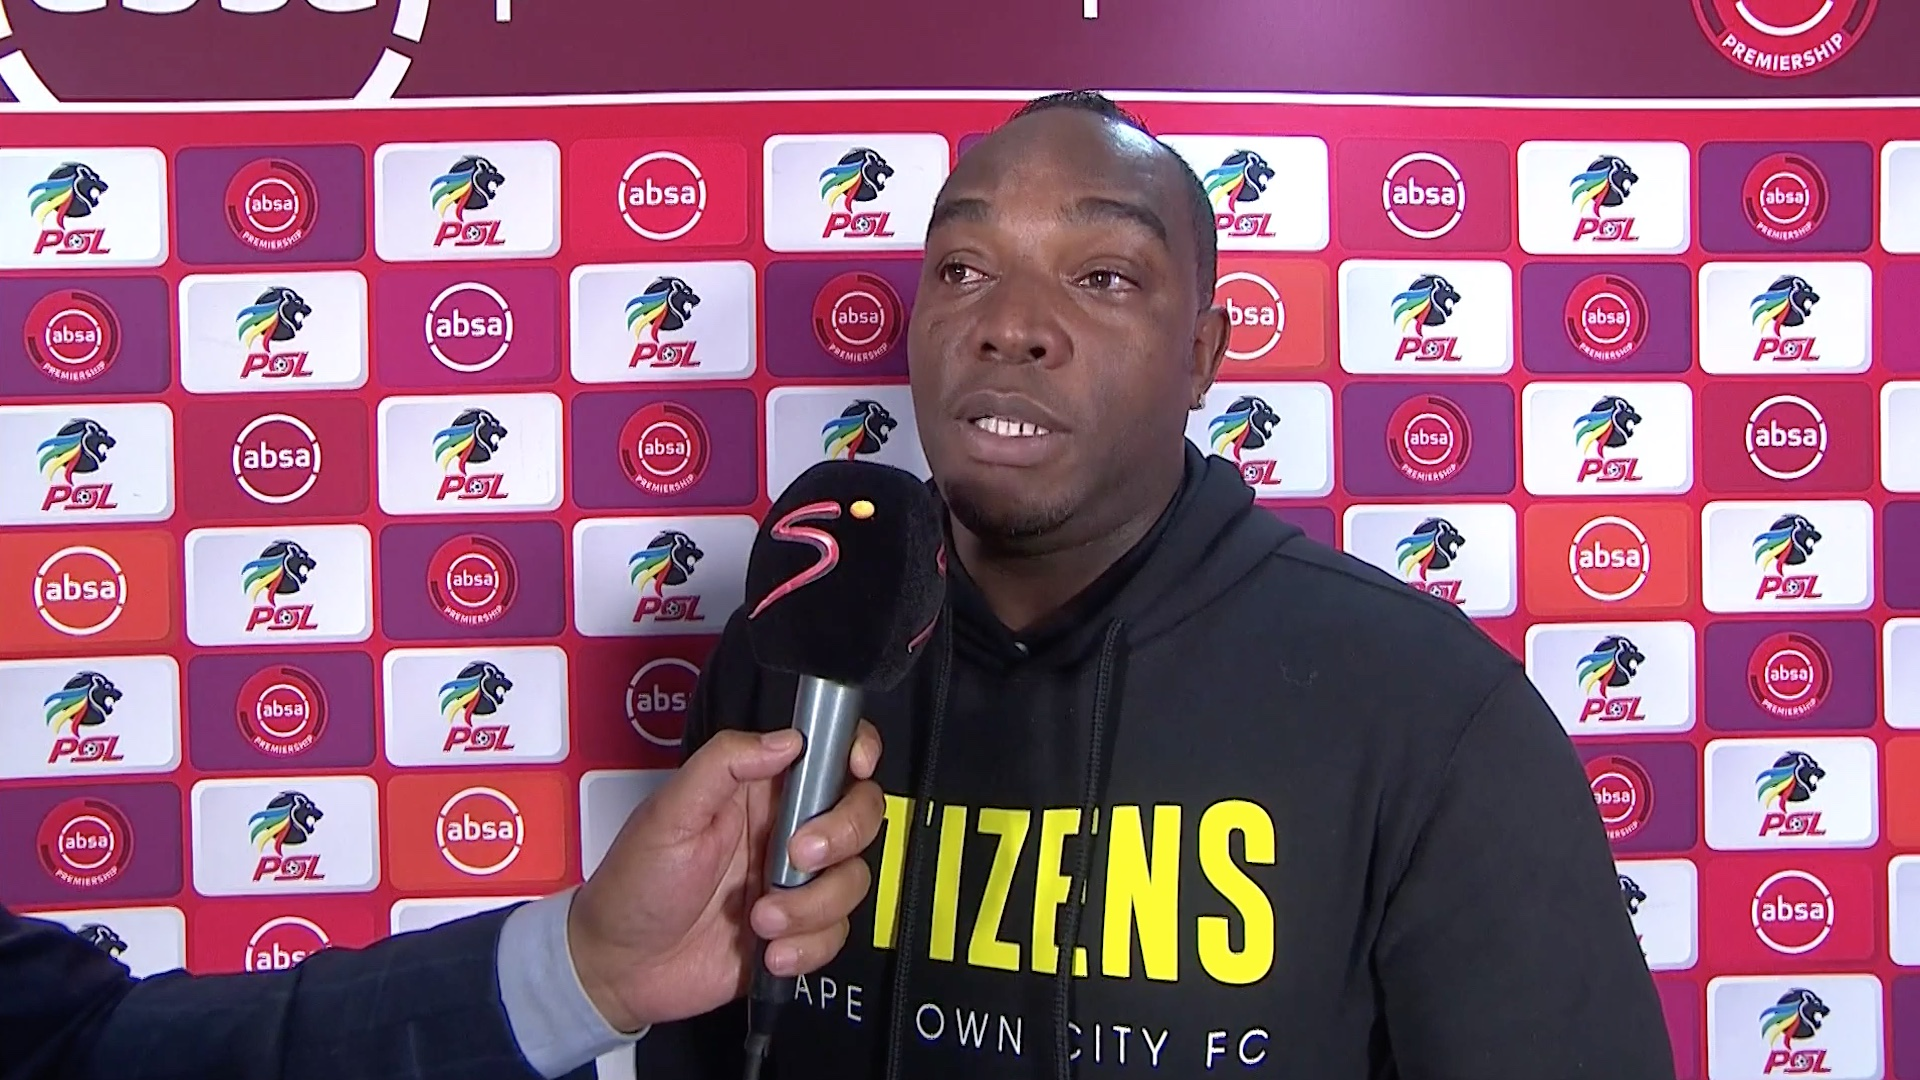 Absa Premiership 2019/20 | Cape Town City v Kaizer Chiefs | Benni McCarthy interview